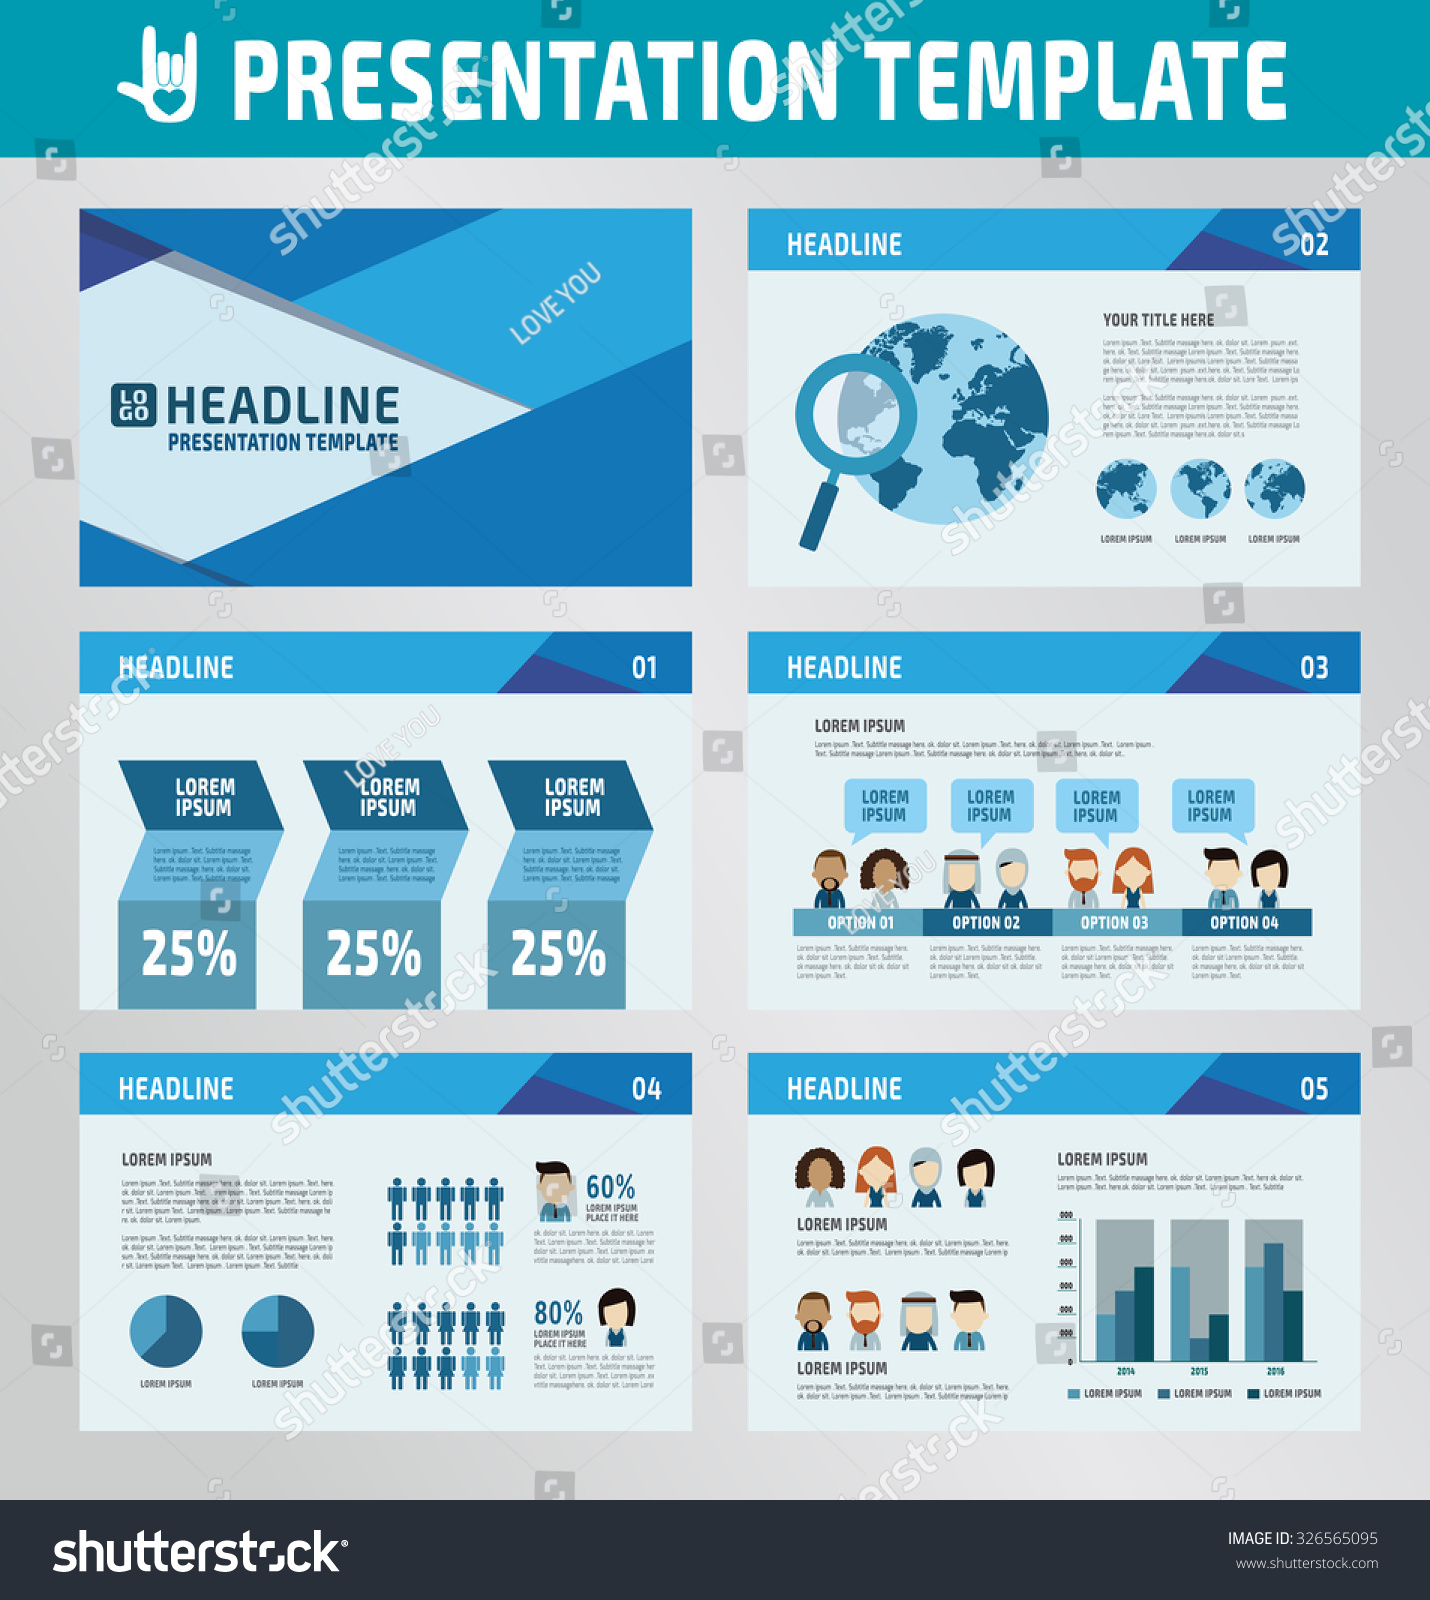 collection multipurpose presentation template icons infographic, Presentation